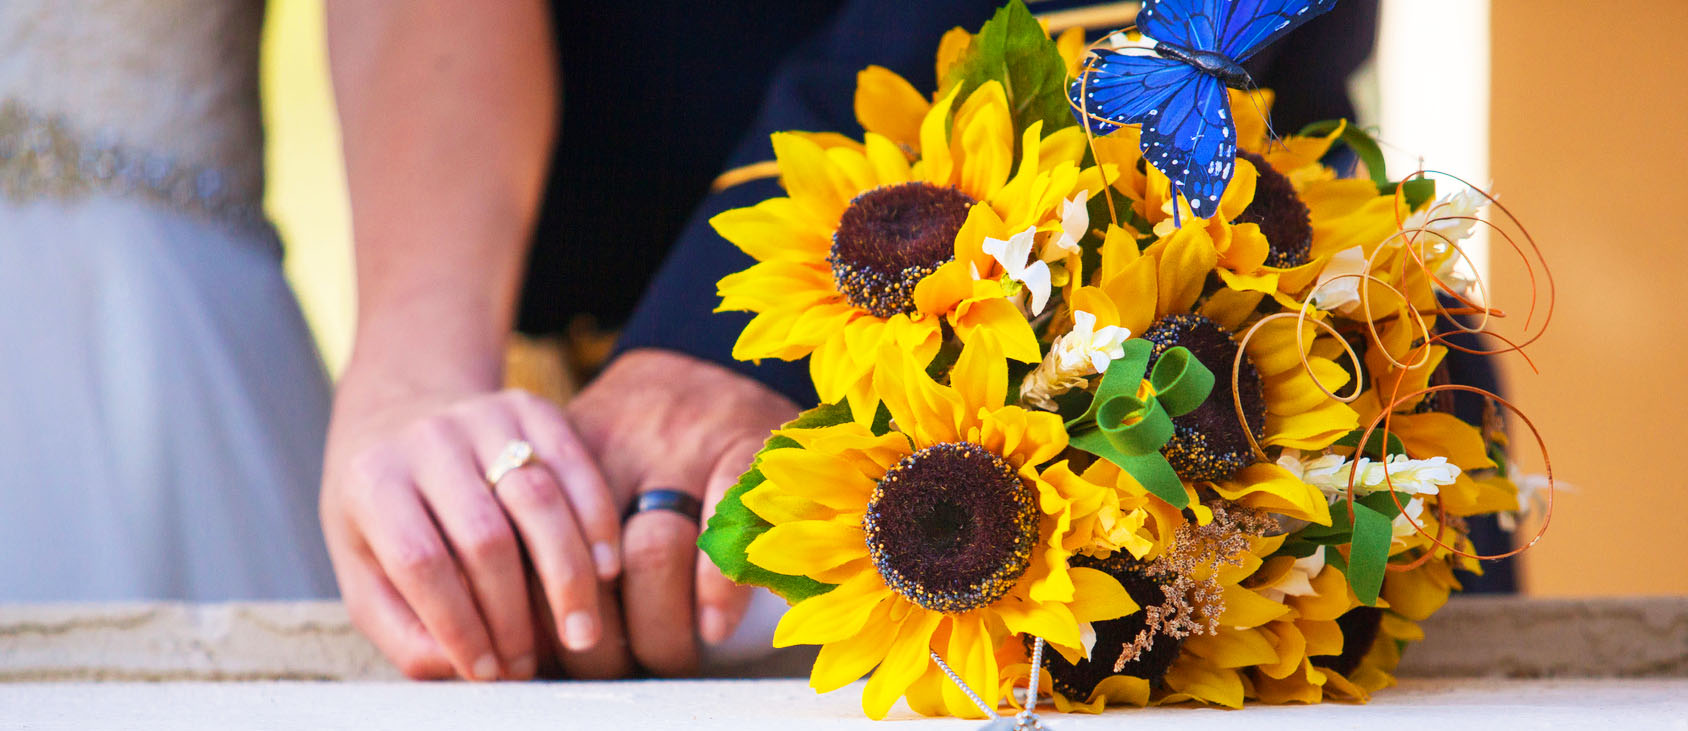 30 sunflower wedding decor ideas for you big day wedding forward sunflower wedding decor ideas featured image junglespirit Choice Image